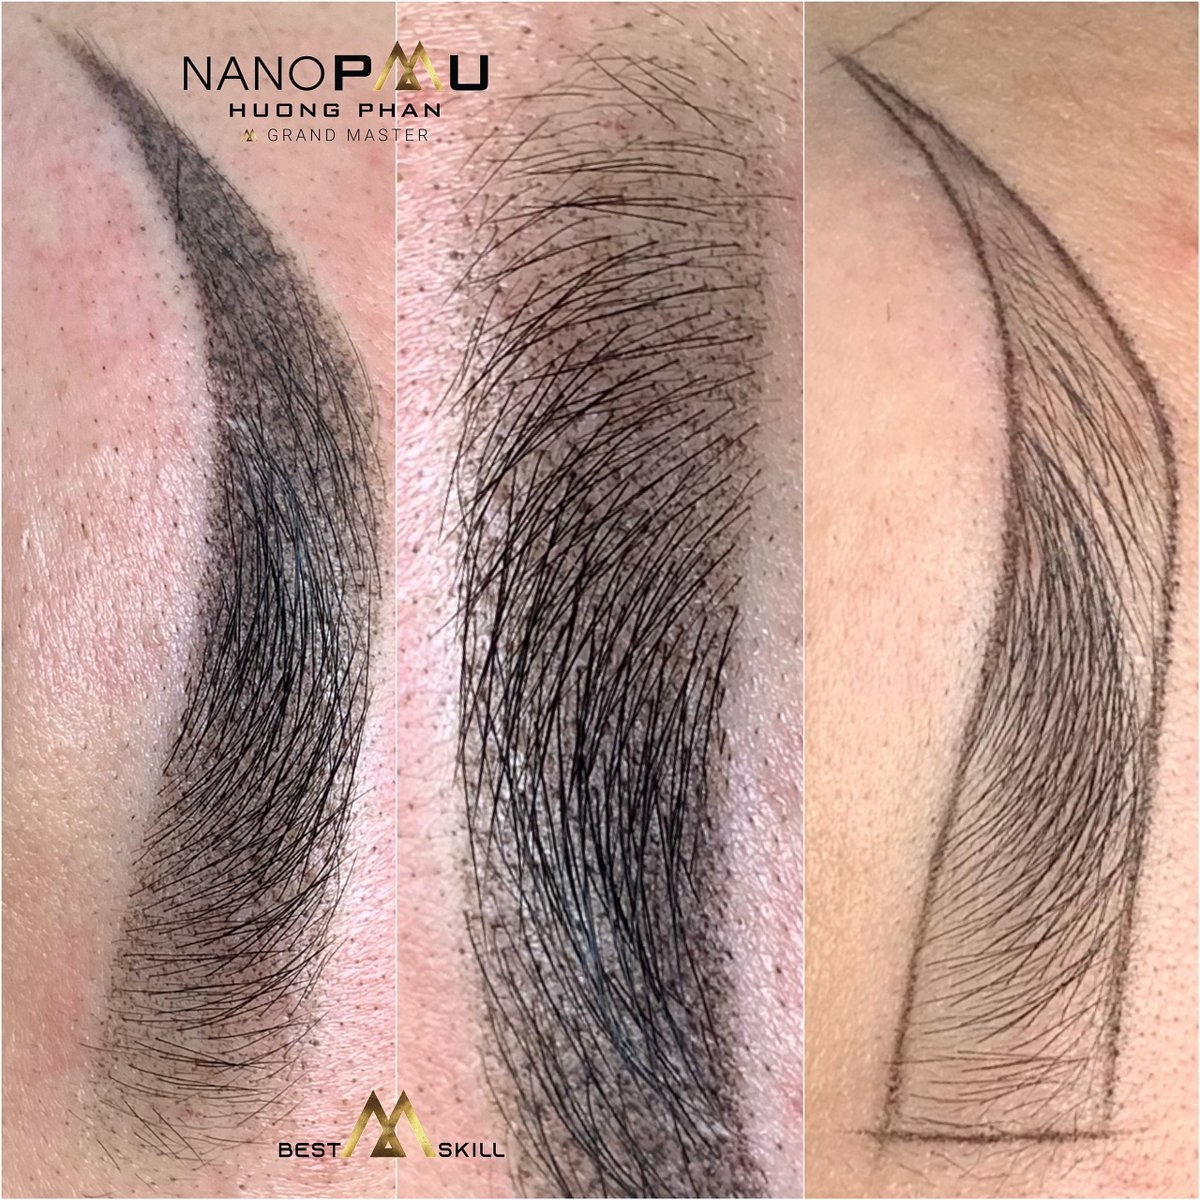 Learn advanced shading technique in our upcoming Nano PMU training and start earning more money!⁠ ⁠Register now to save $500. https://soo.nr/omAF  ⁠ #microblading #nano #nanopmu #phibrows #phibrowsartist #phiacademy  ⁠ pic.twitter.com/PC1NPhKzUL